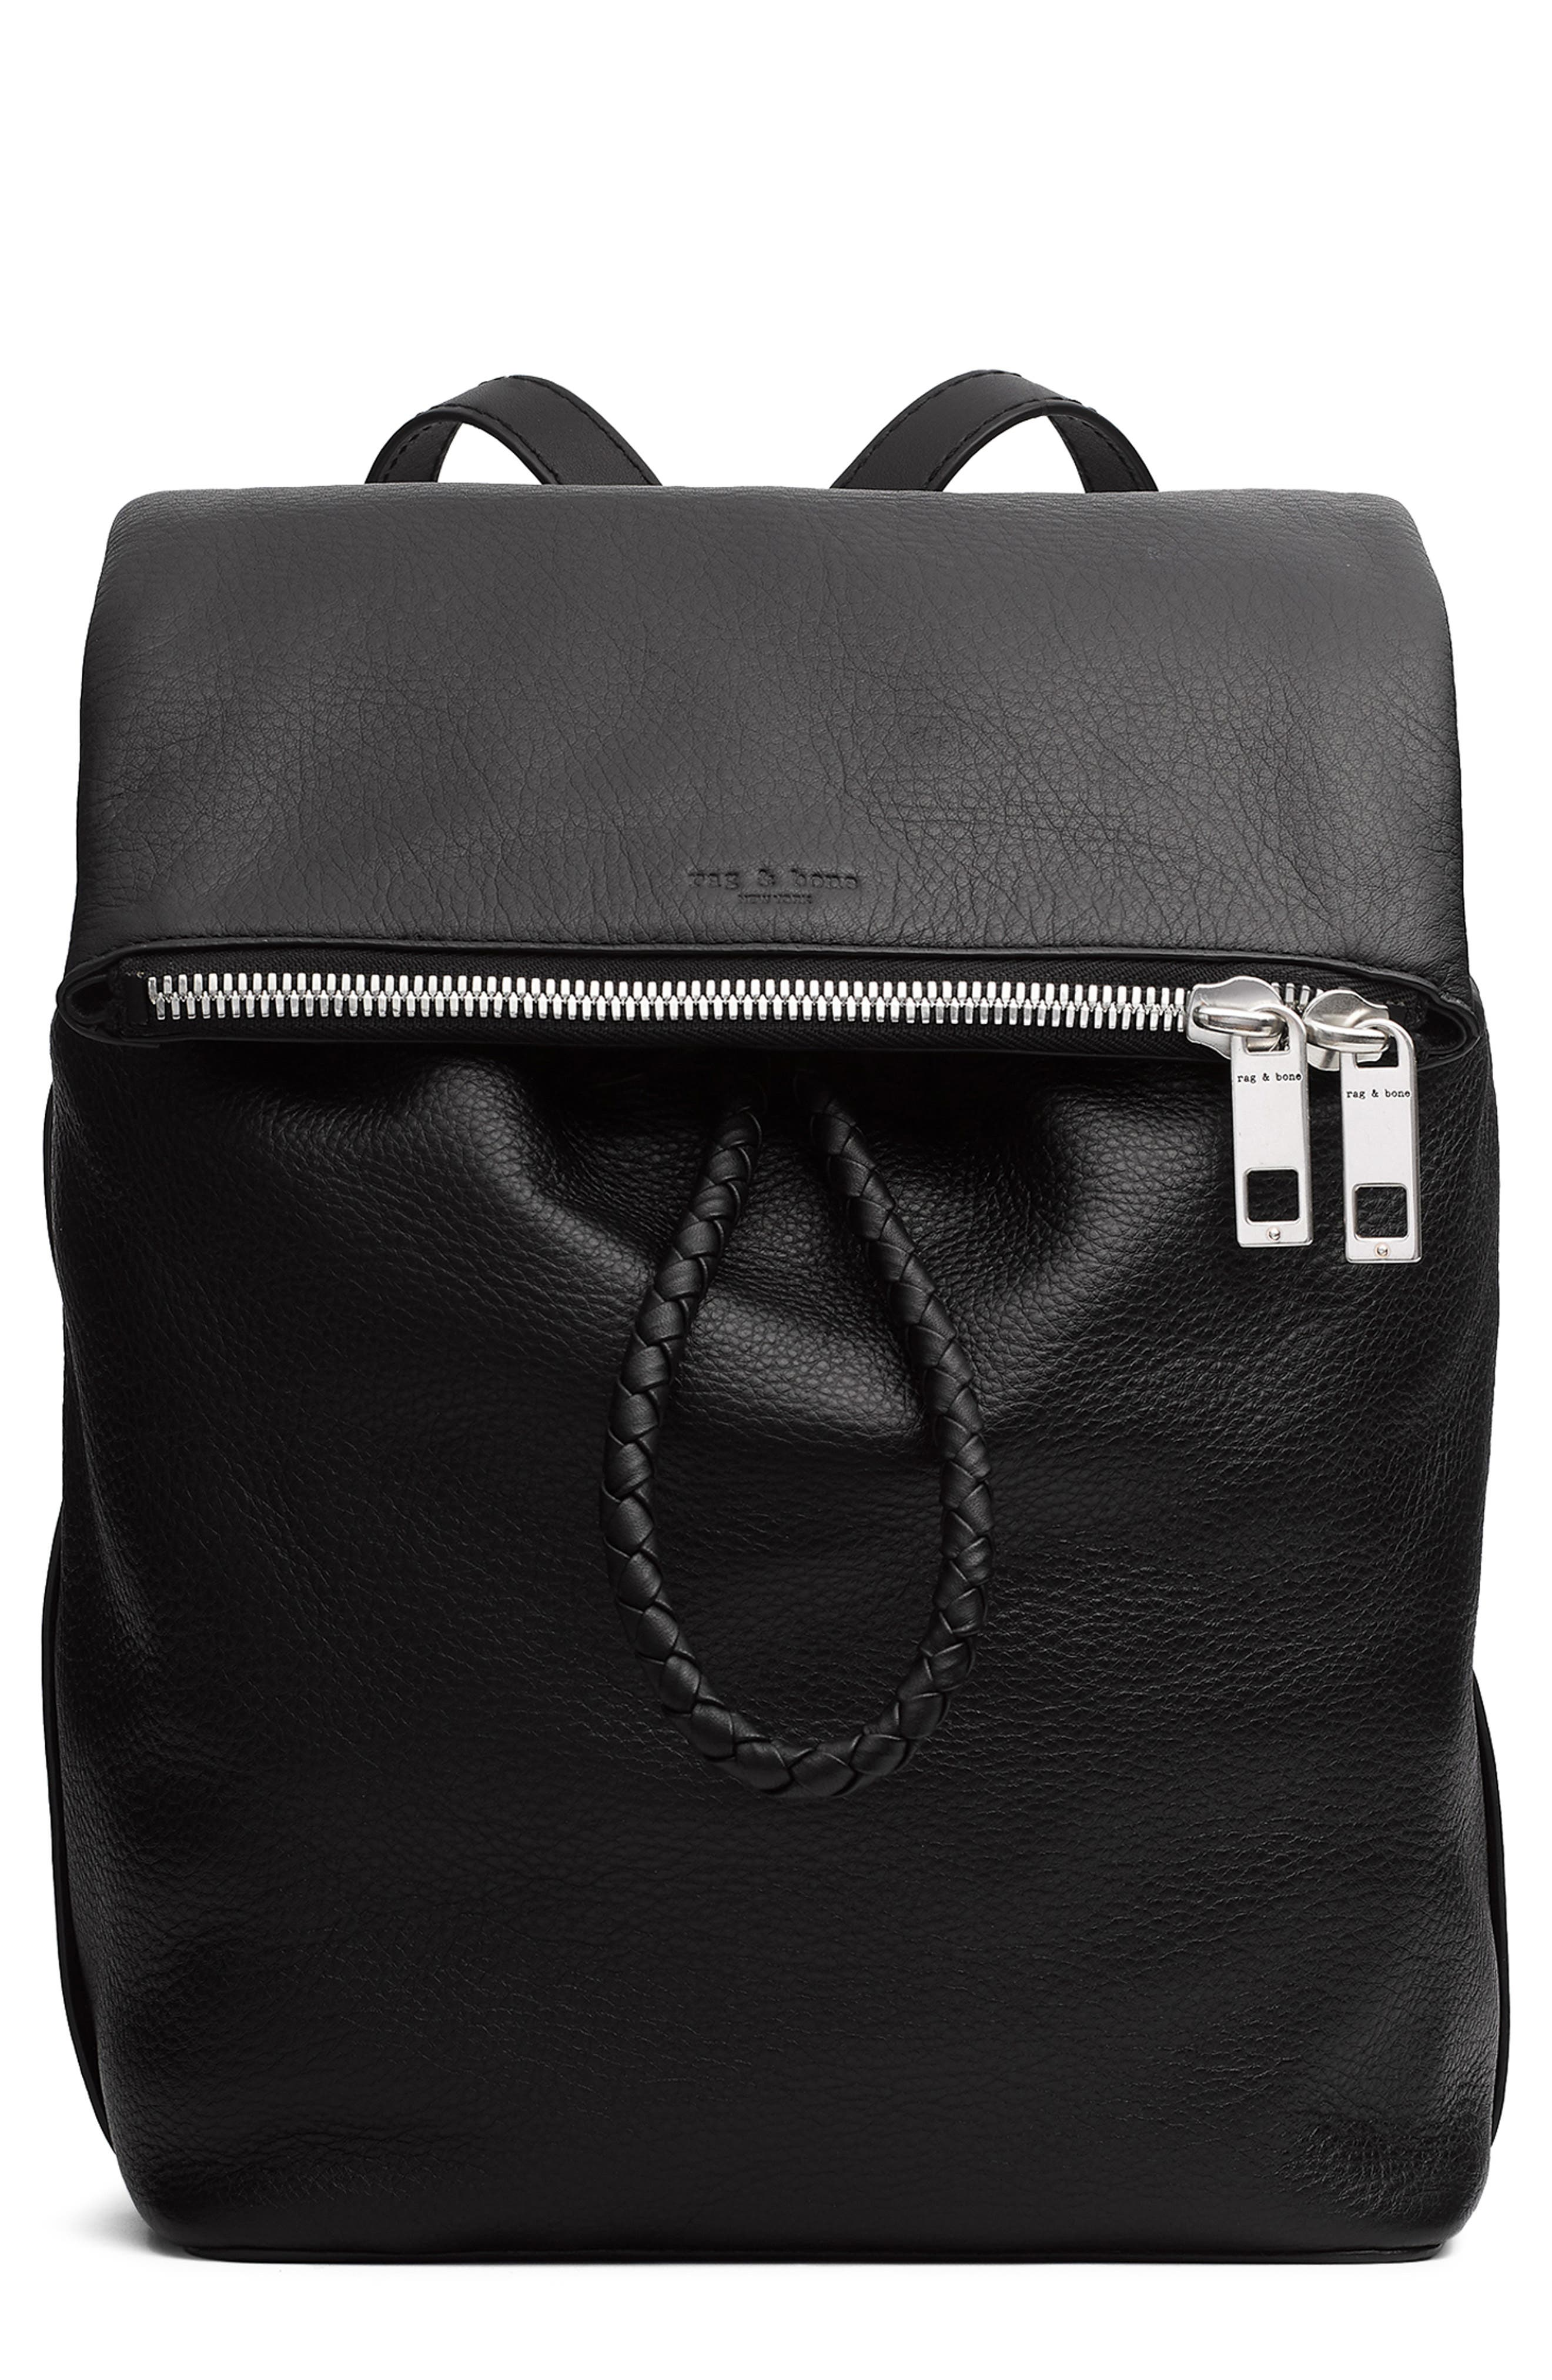 Loner Leather Backpack,                             Main thumbnail 1, color,                             BLACK